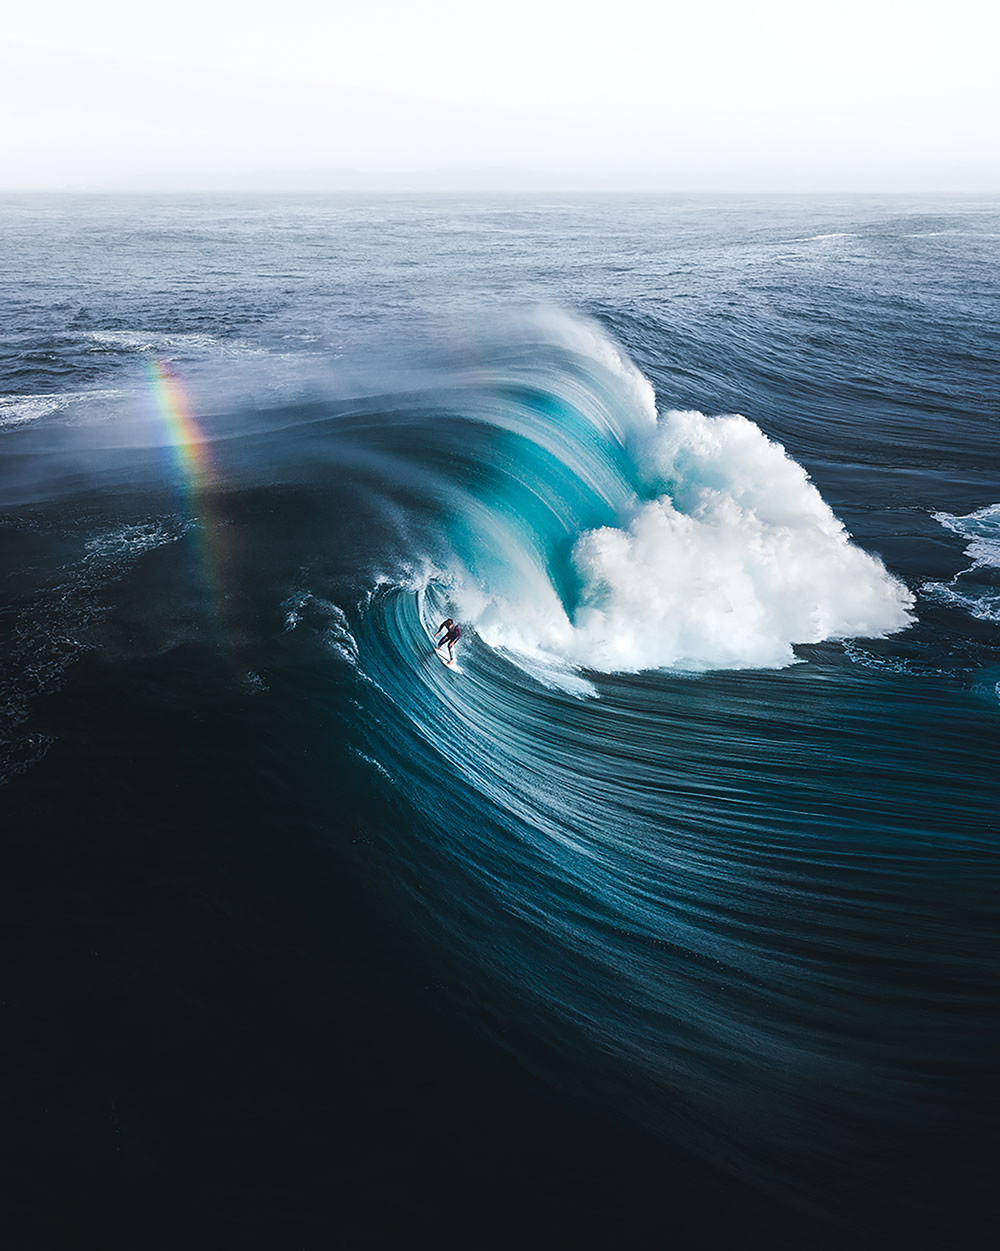 The Ocean Photography Awards 2021 Finalists